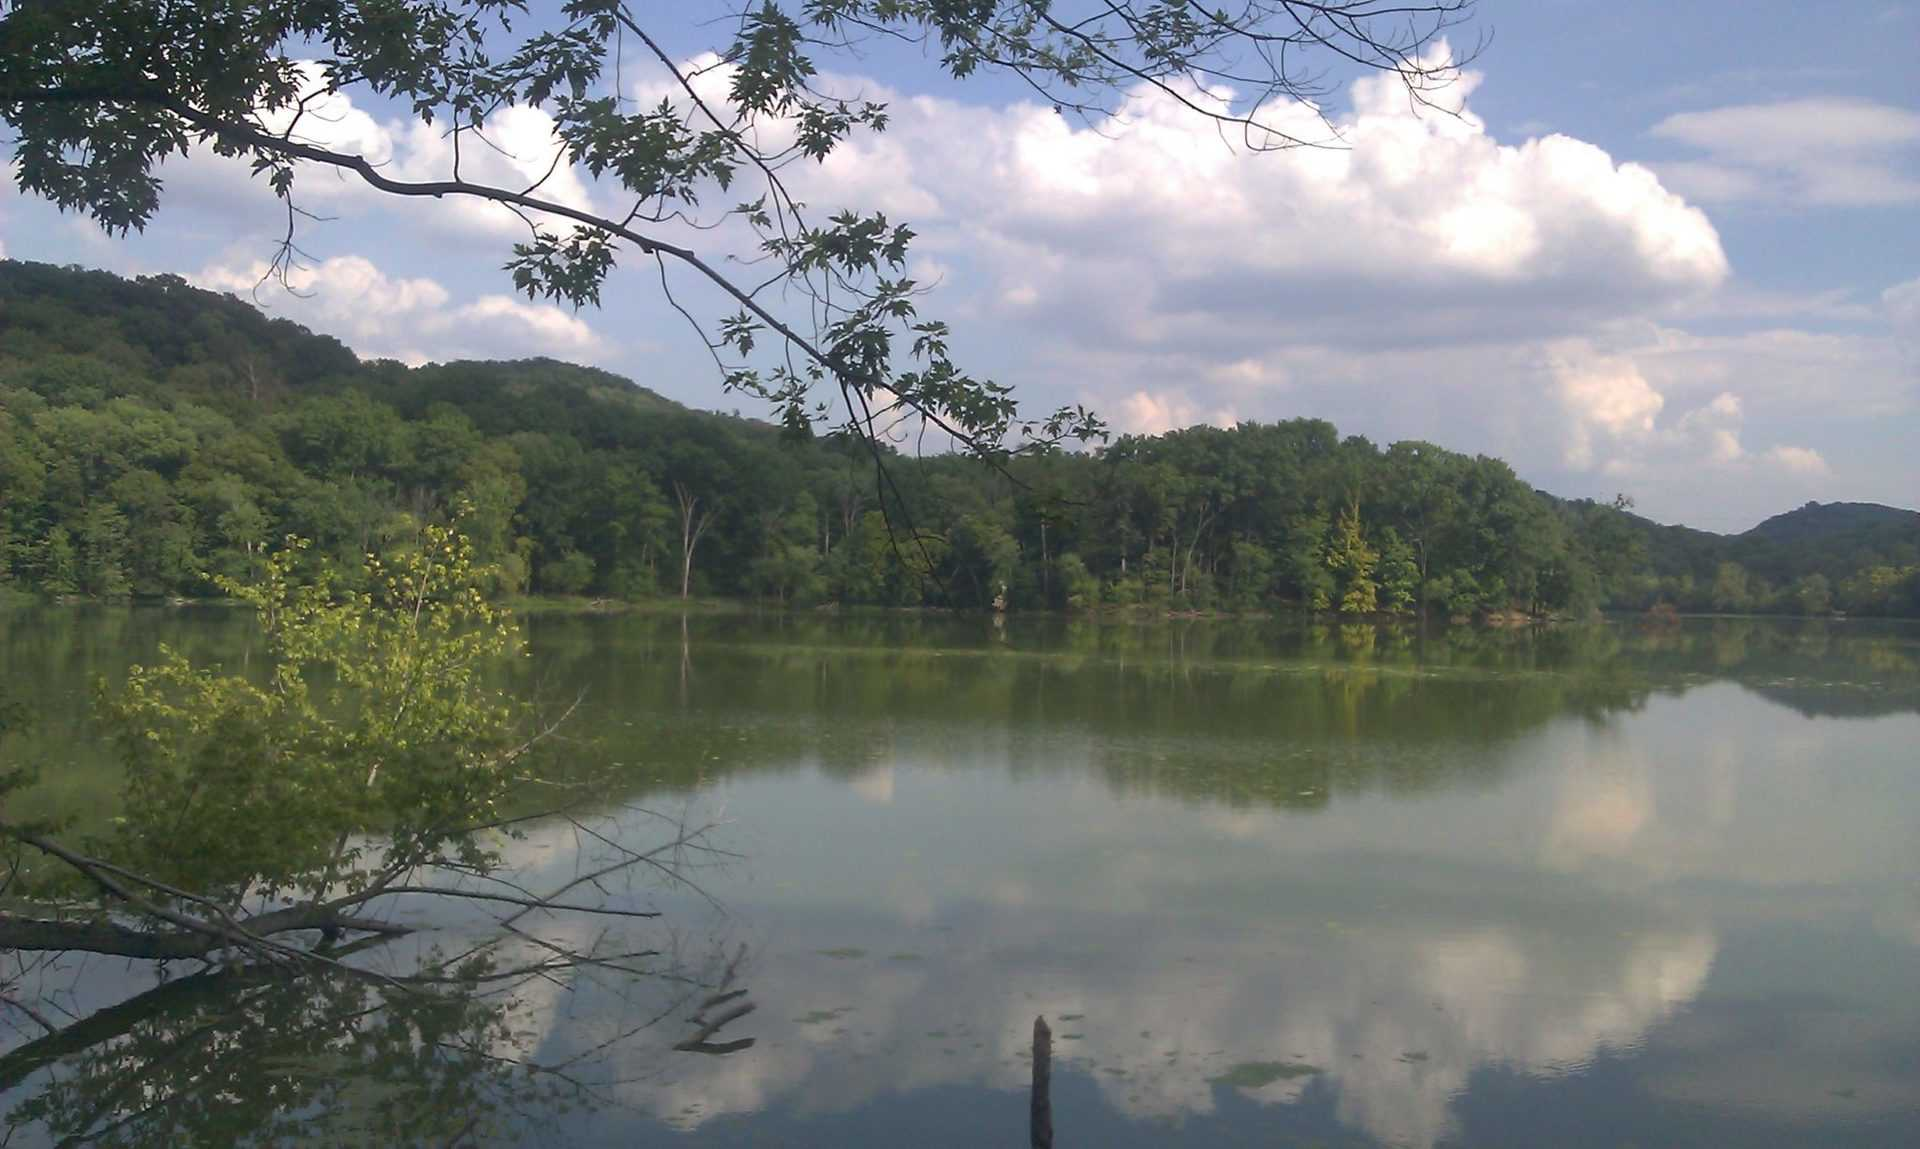 Radnor Lake - a view of the lake from the trails